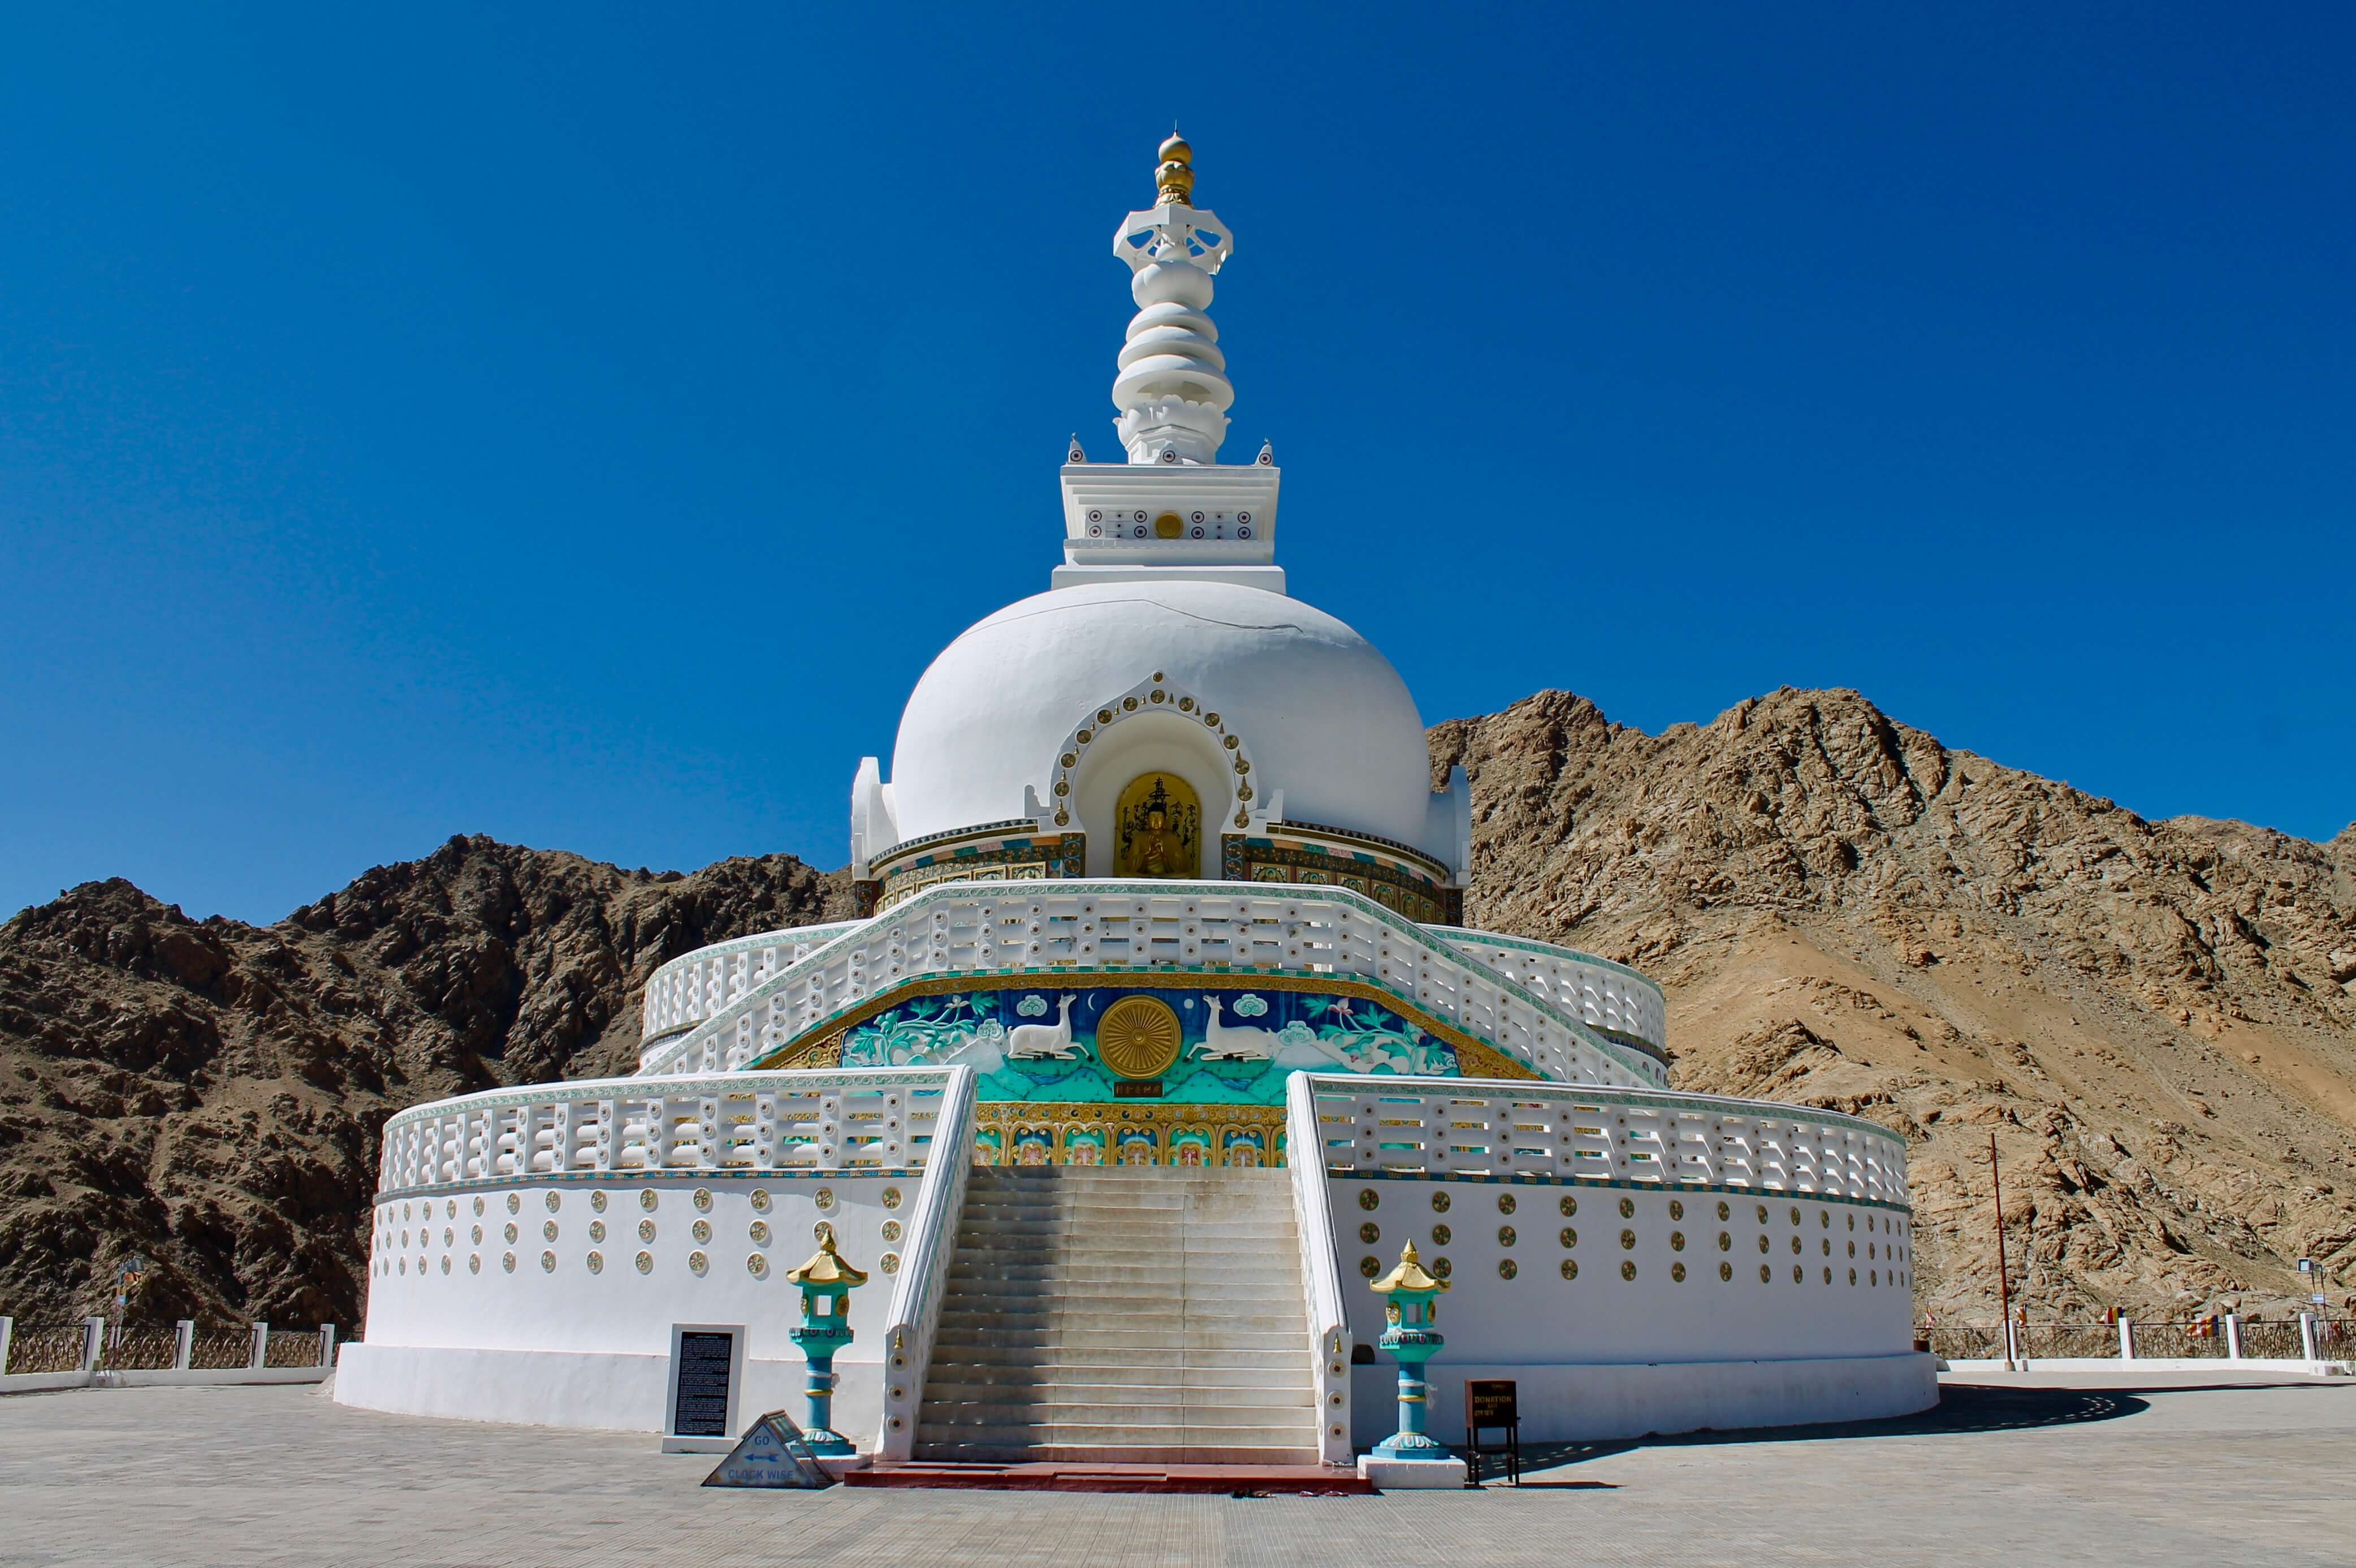 Ladakh - a photographic journey to Little Tibet